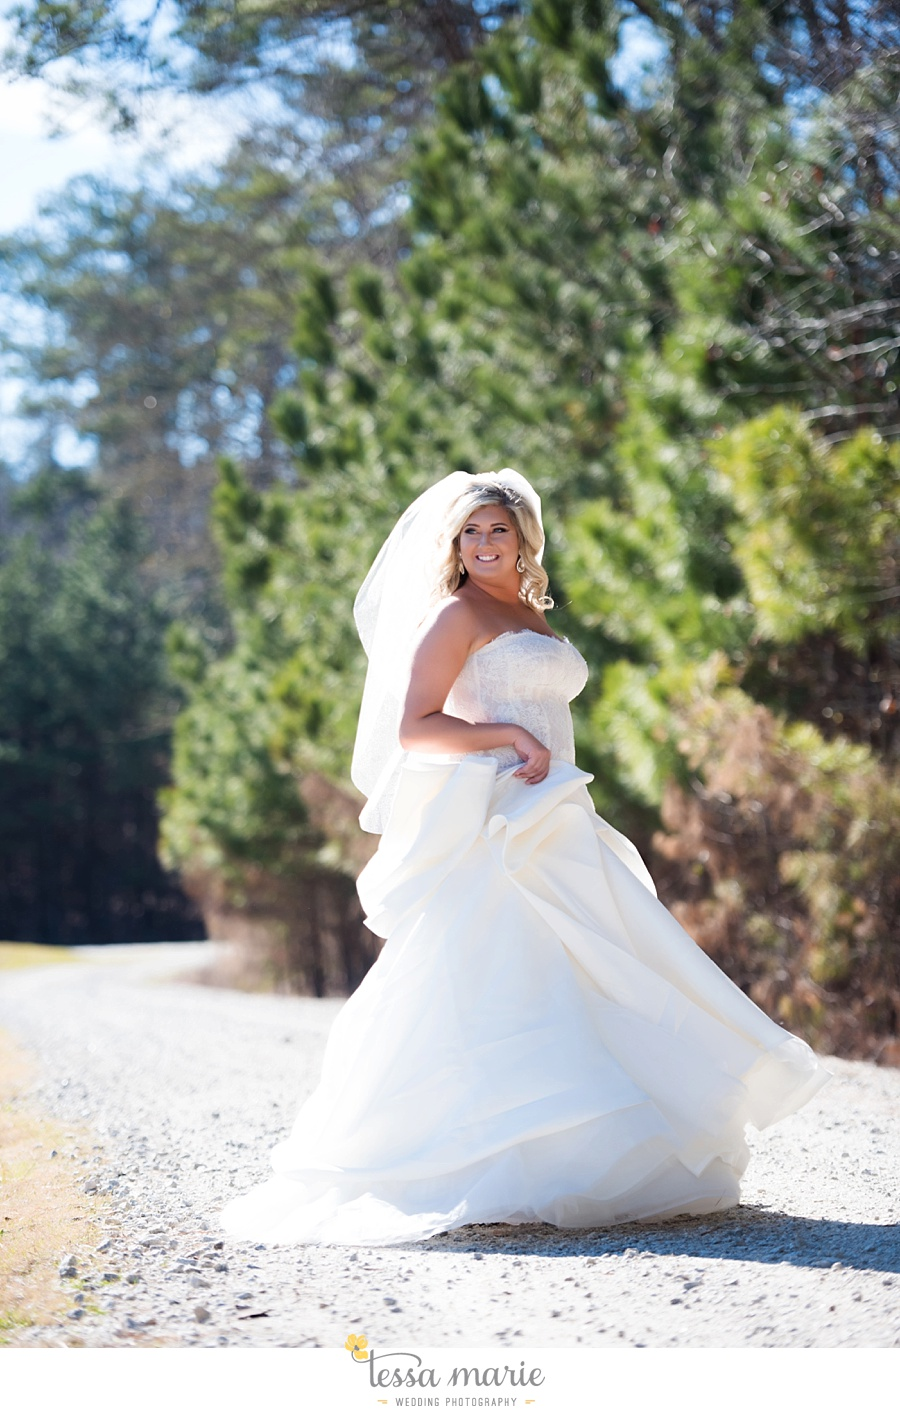 foxhall_outdoor_wedding_stables_pictures_tessa_marie_weddings_kayla_buck_bloomin_bouquets_joan_pillow_atlanta_wedding_pictures_0027